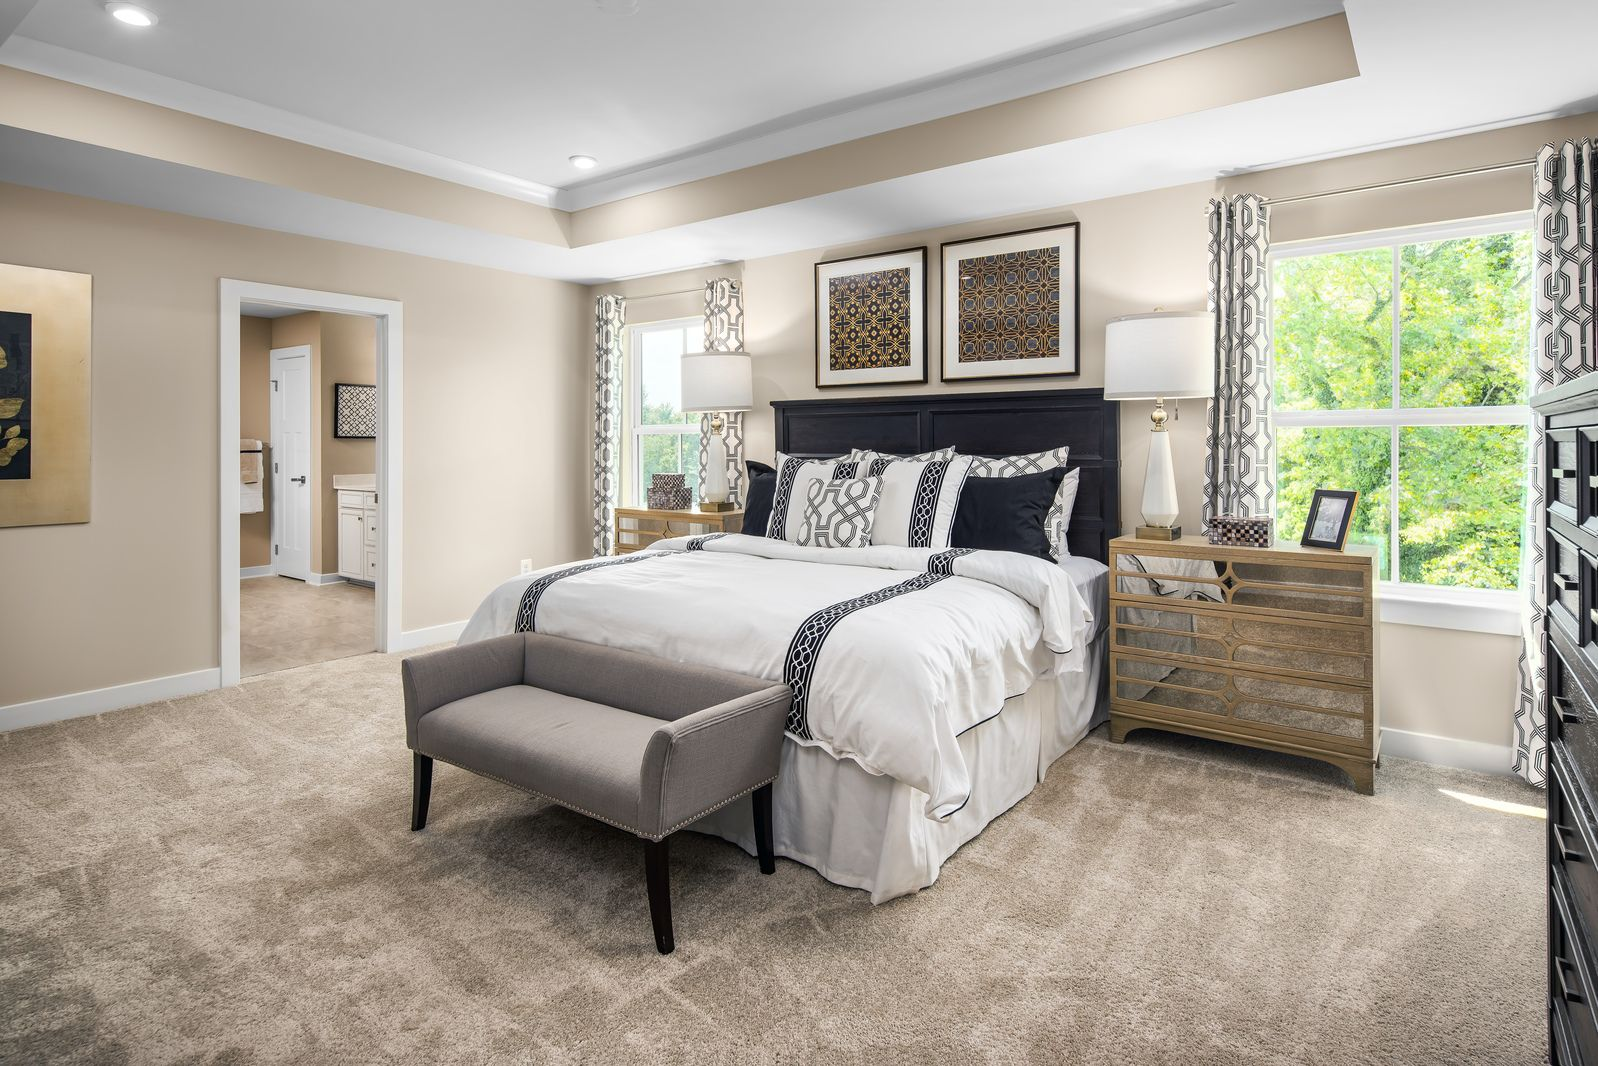 Bedroom featured in the Hudson By Ryan Homes in Washington, VA